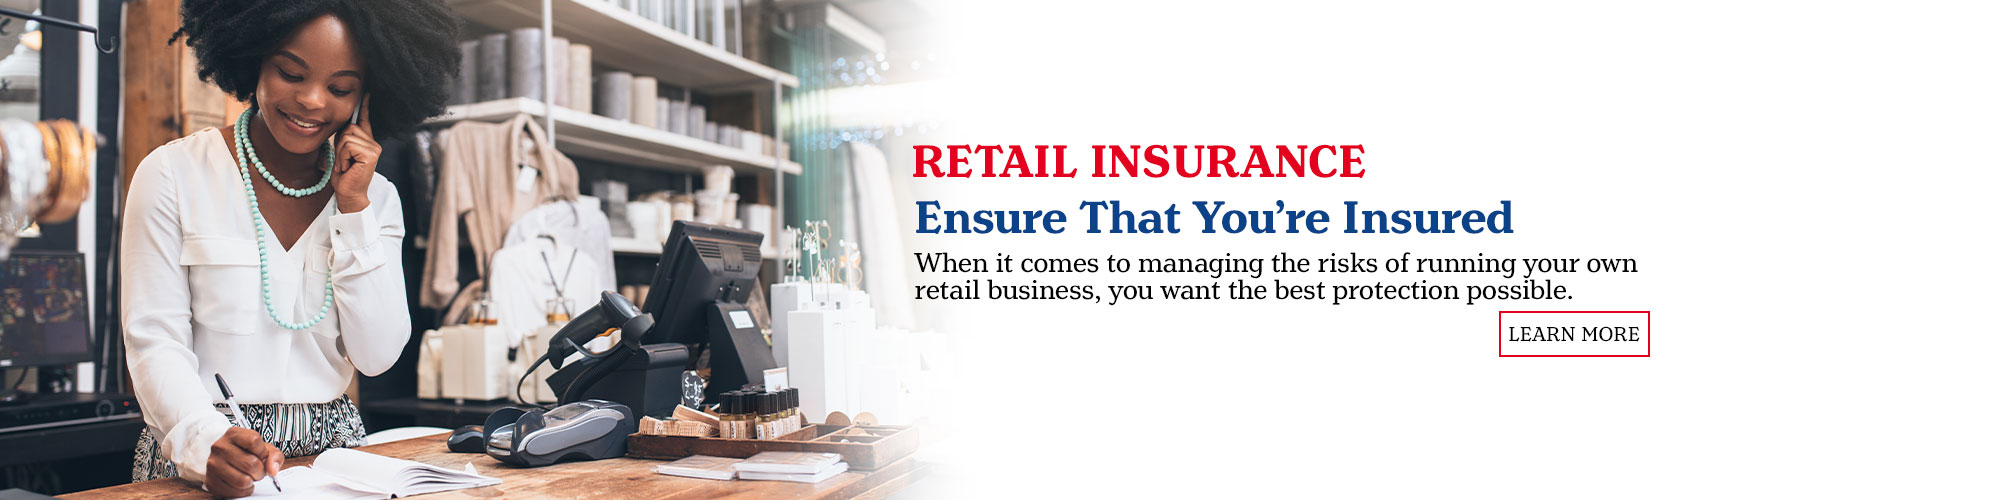 Retail Insurance. Ensure That You're Ensured. when it comes to keeping their business running at a high level, including everything from regulatory issues and theft, to competition within the industry. When it comes to managing the risks of running your own retail business, you want the best protection possible. Learn More.